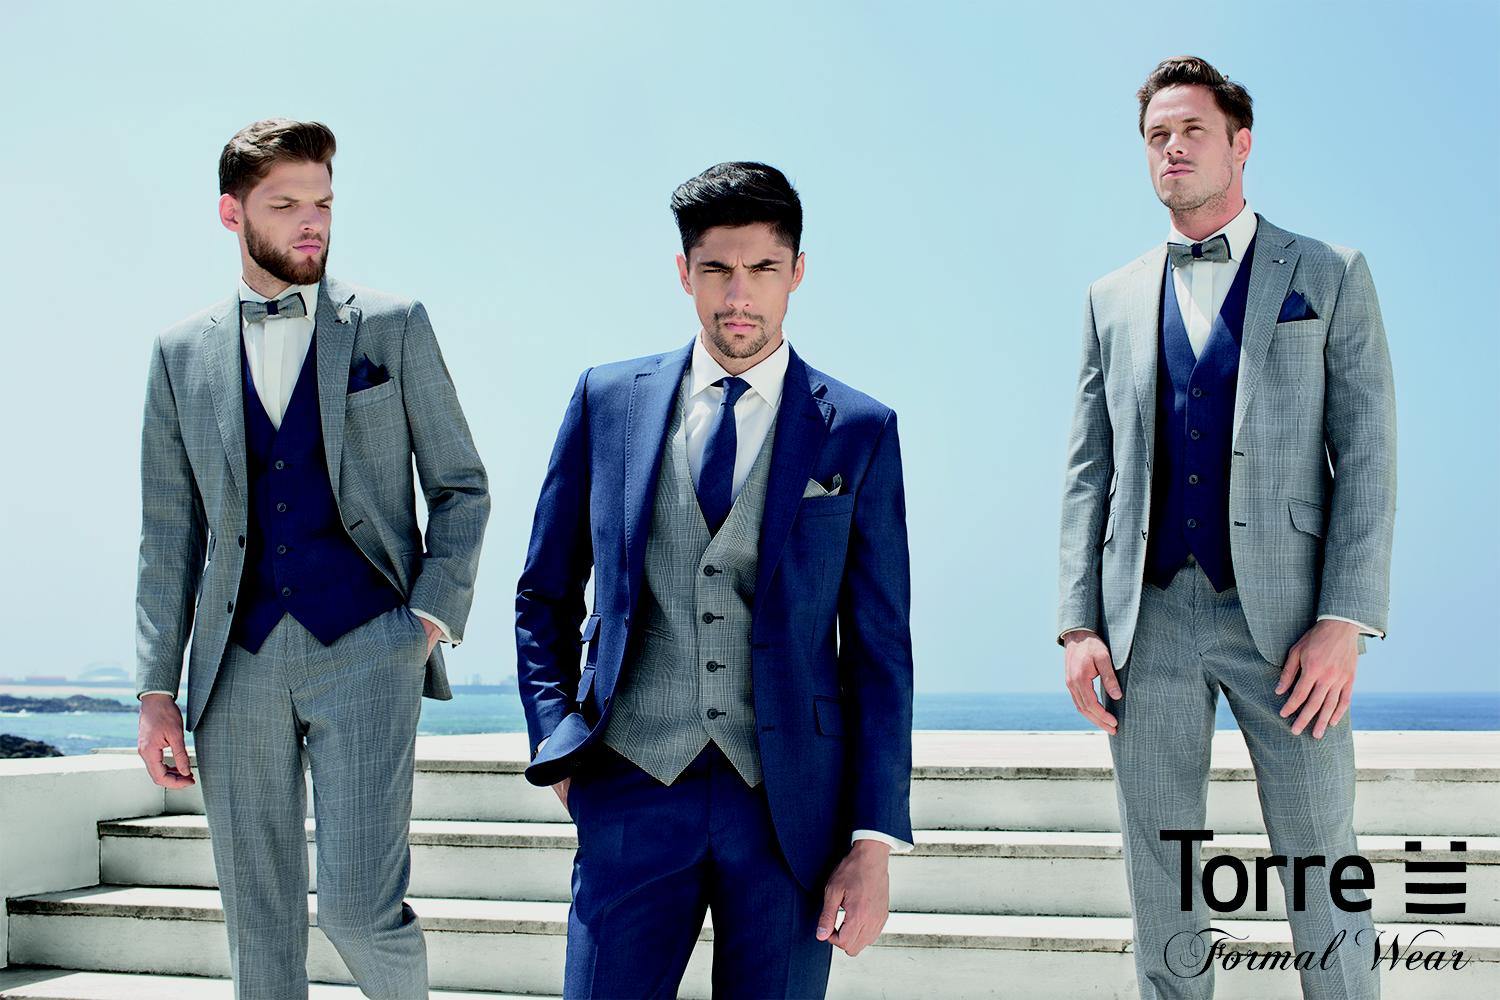 Top five menswear trends from Torre